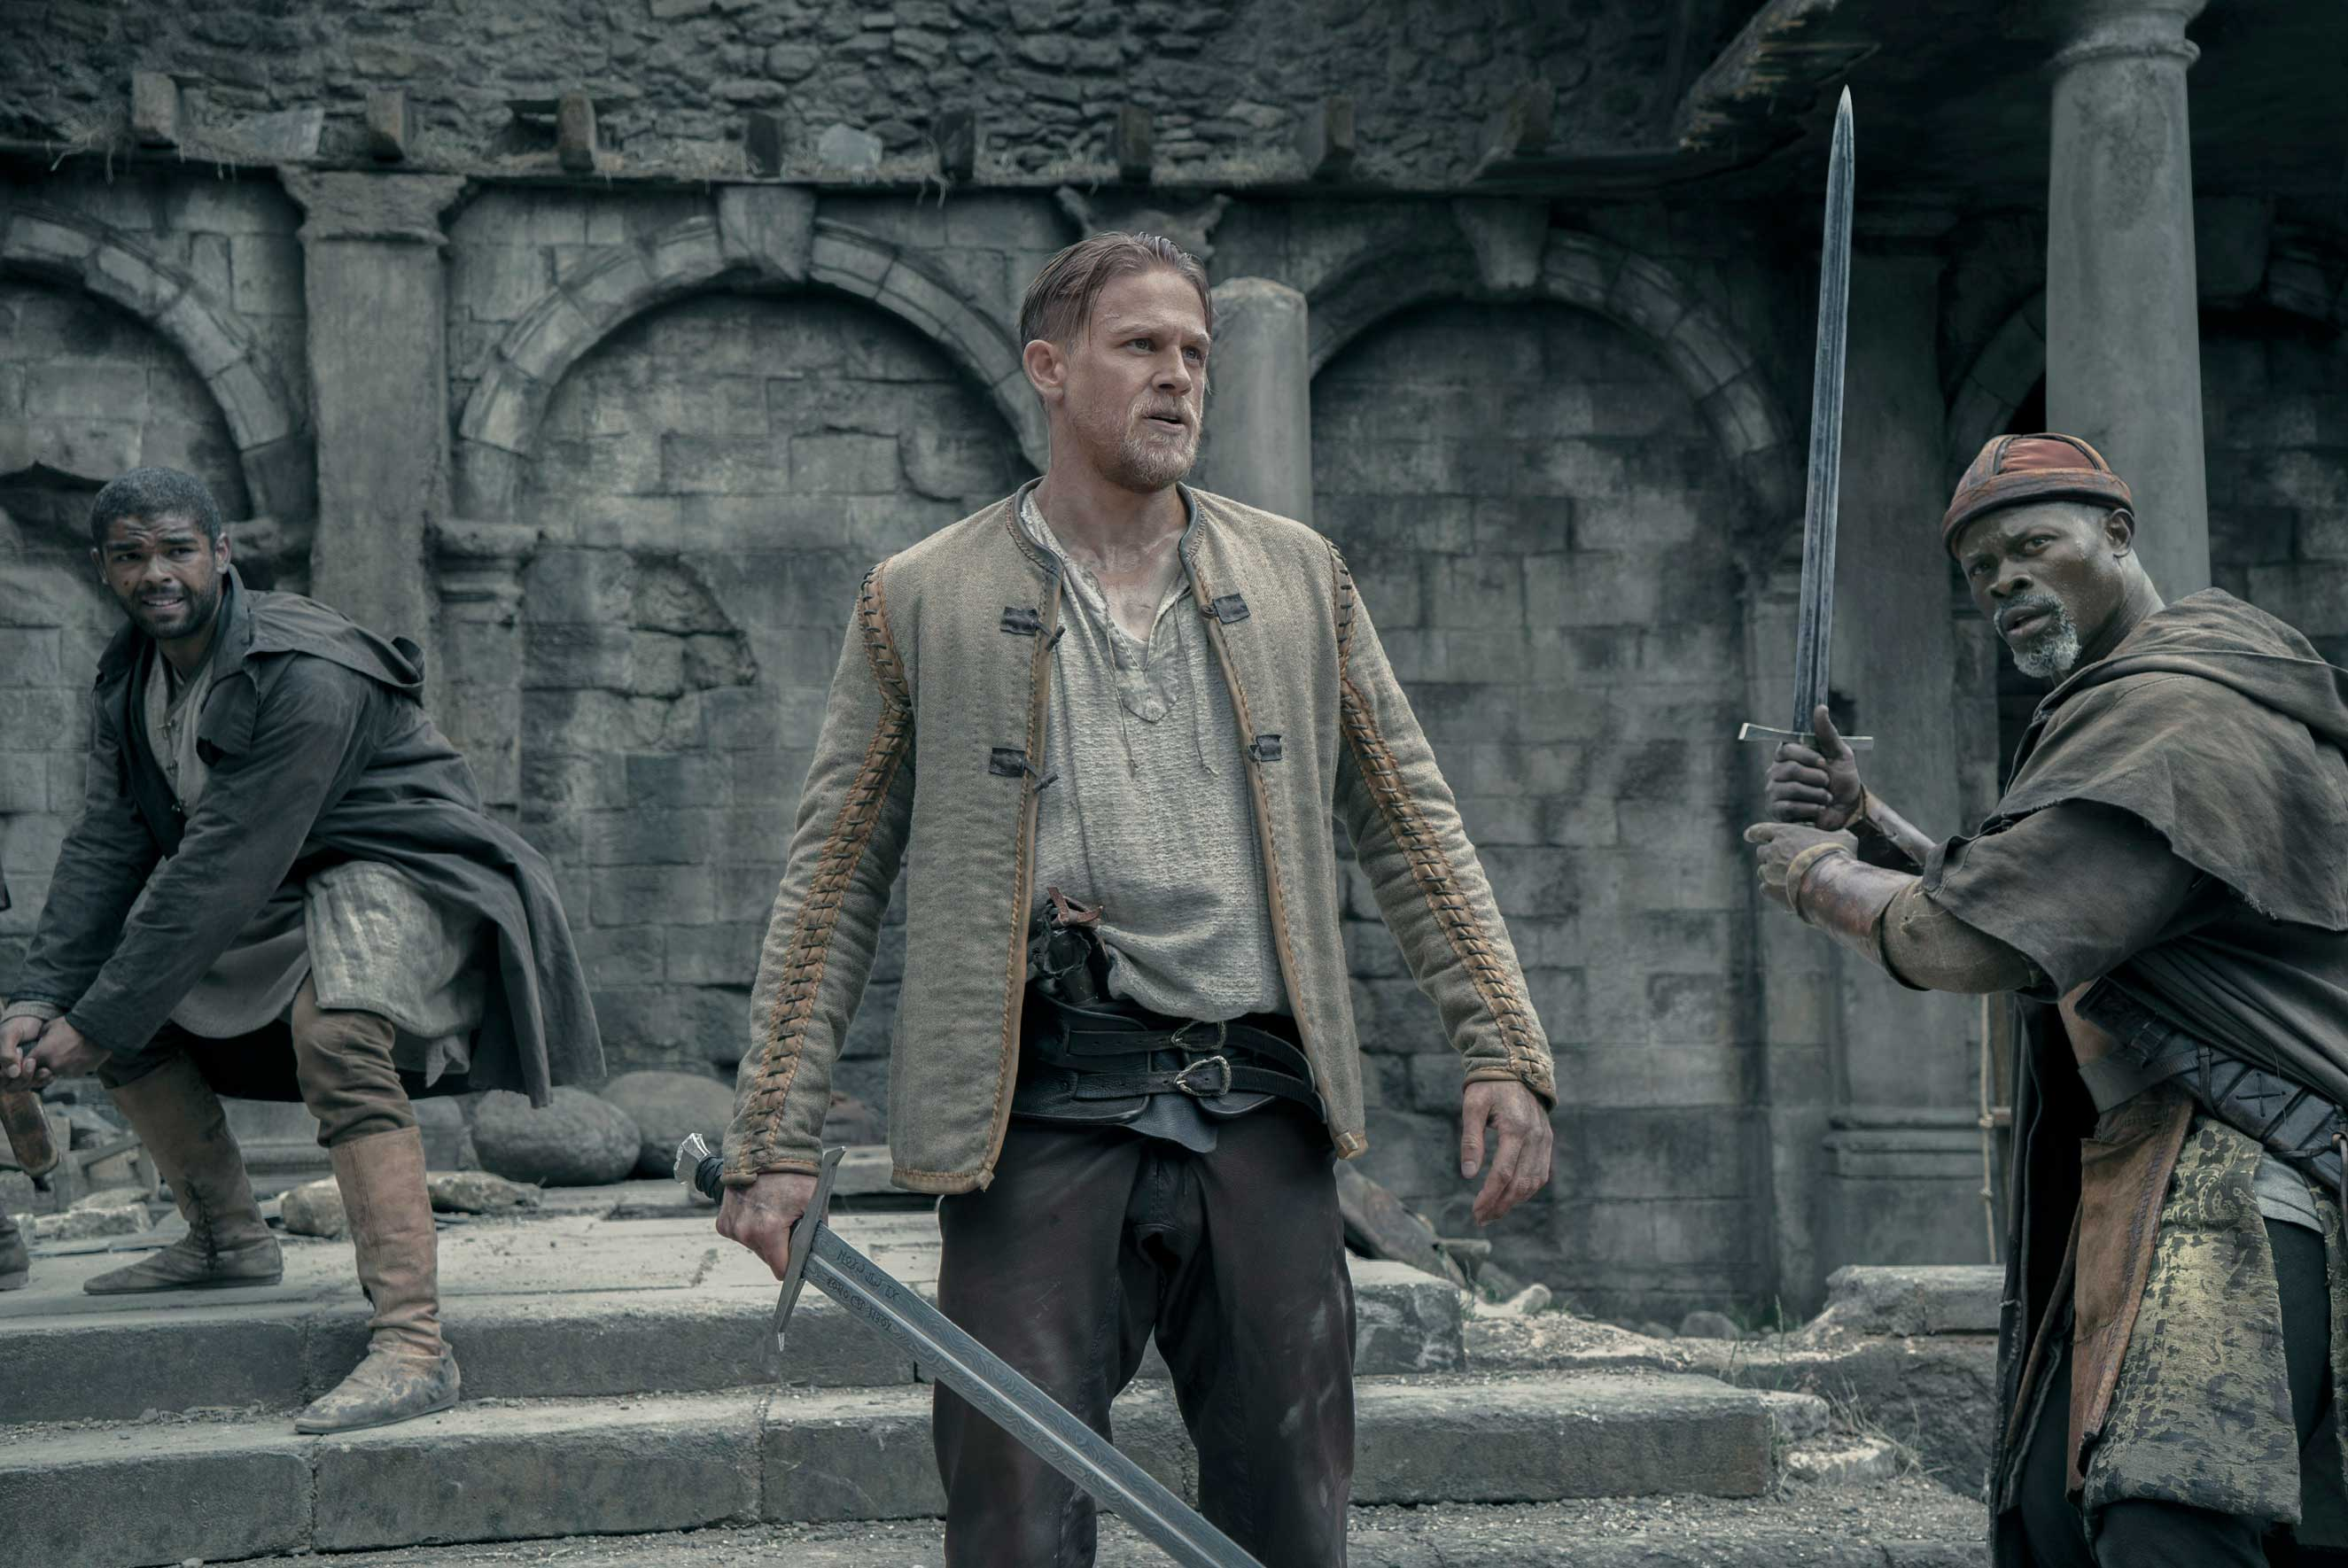 Hunnam as the young King Arthur, jazzed up for modern sensibilities